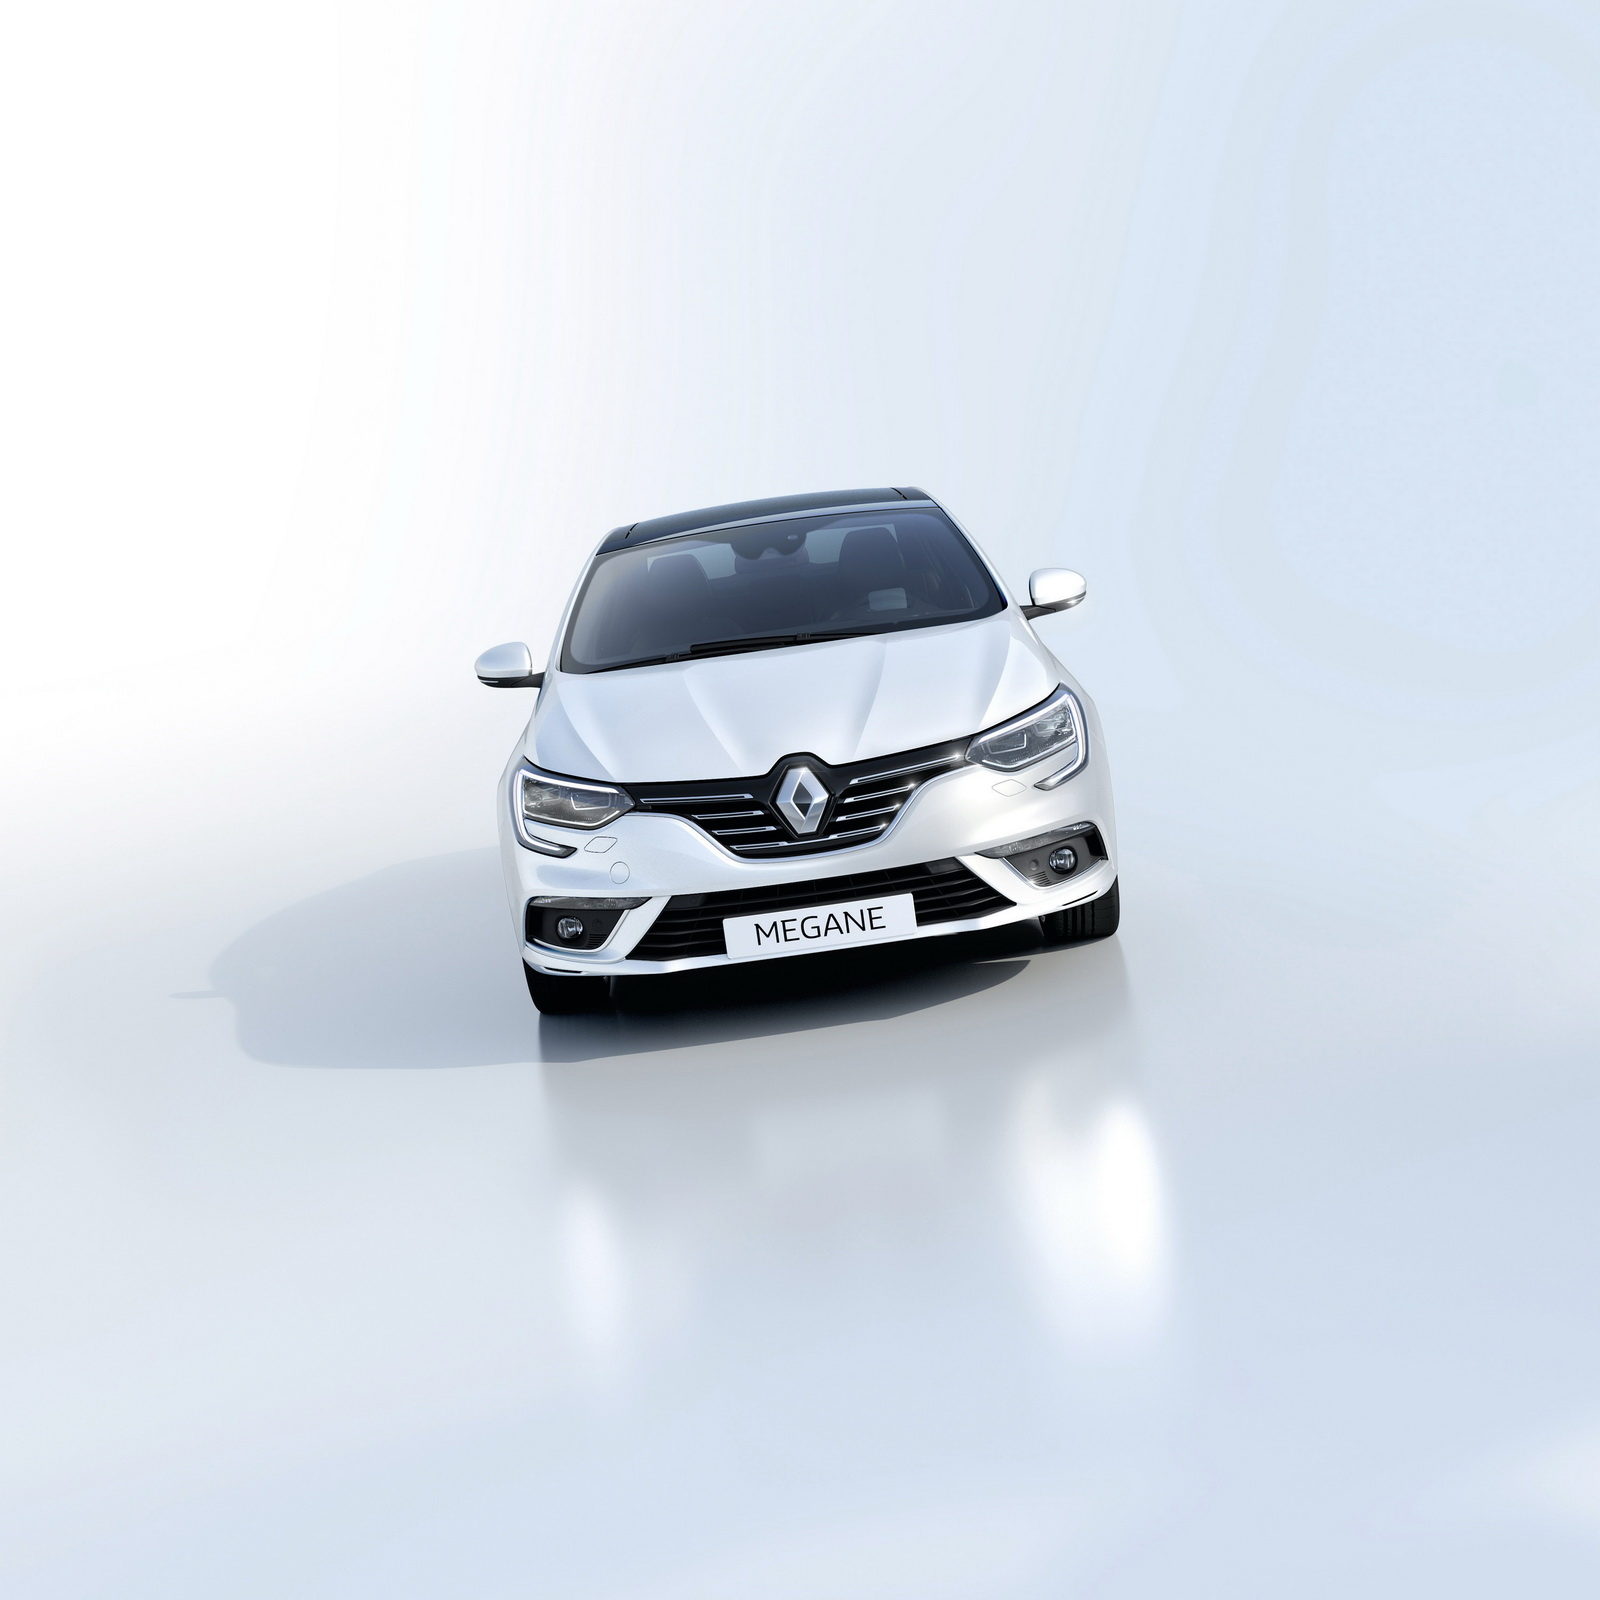 new renault megane sedan joins the range carscoops. Black Bedroom Furniture Sets. Home Design Ideas